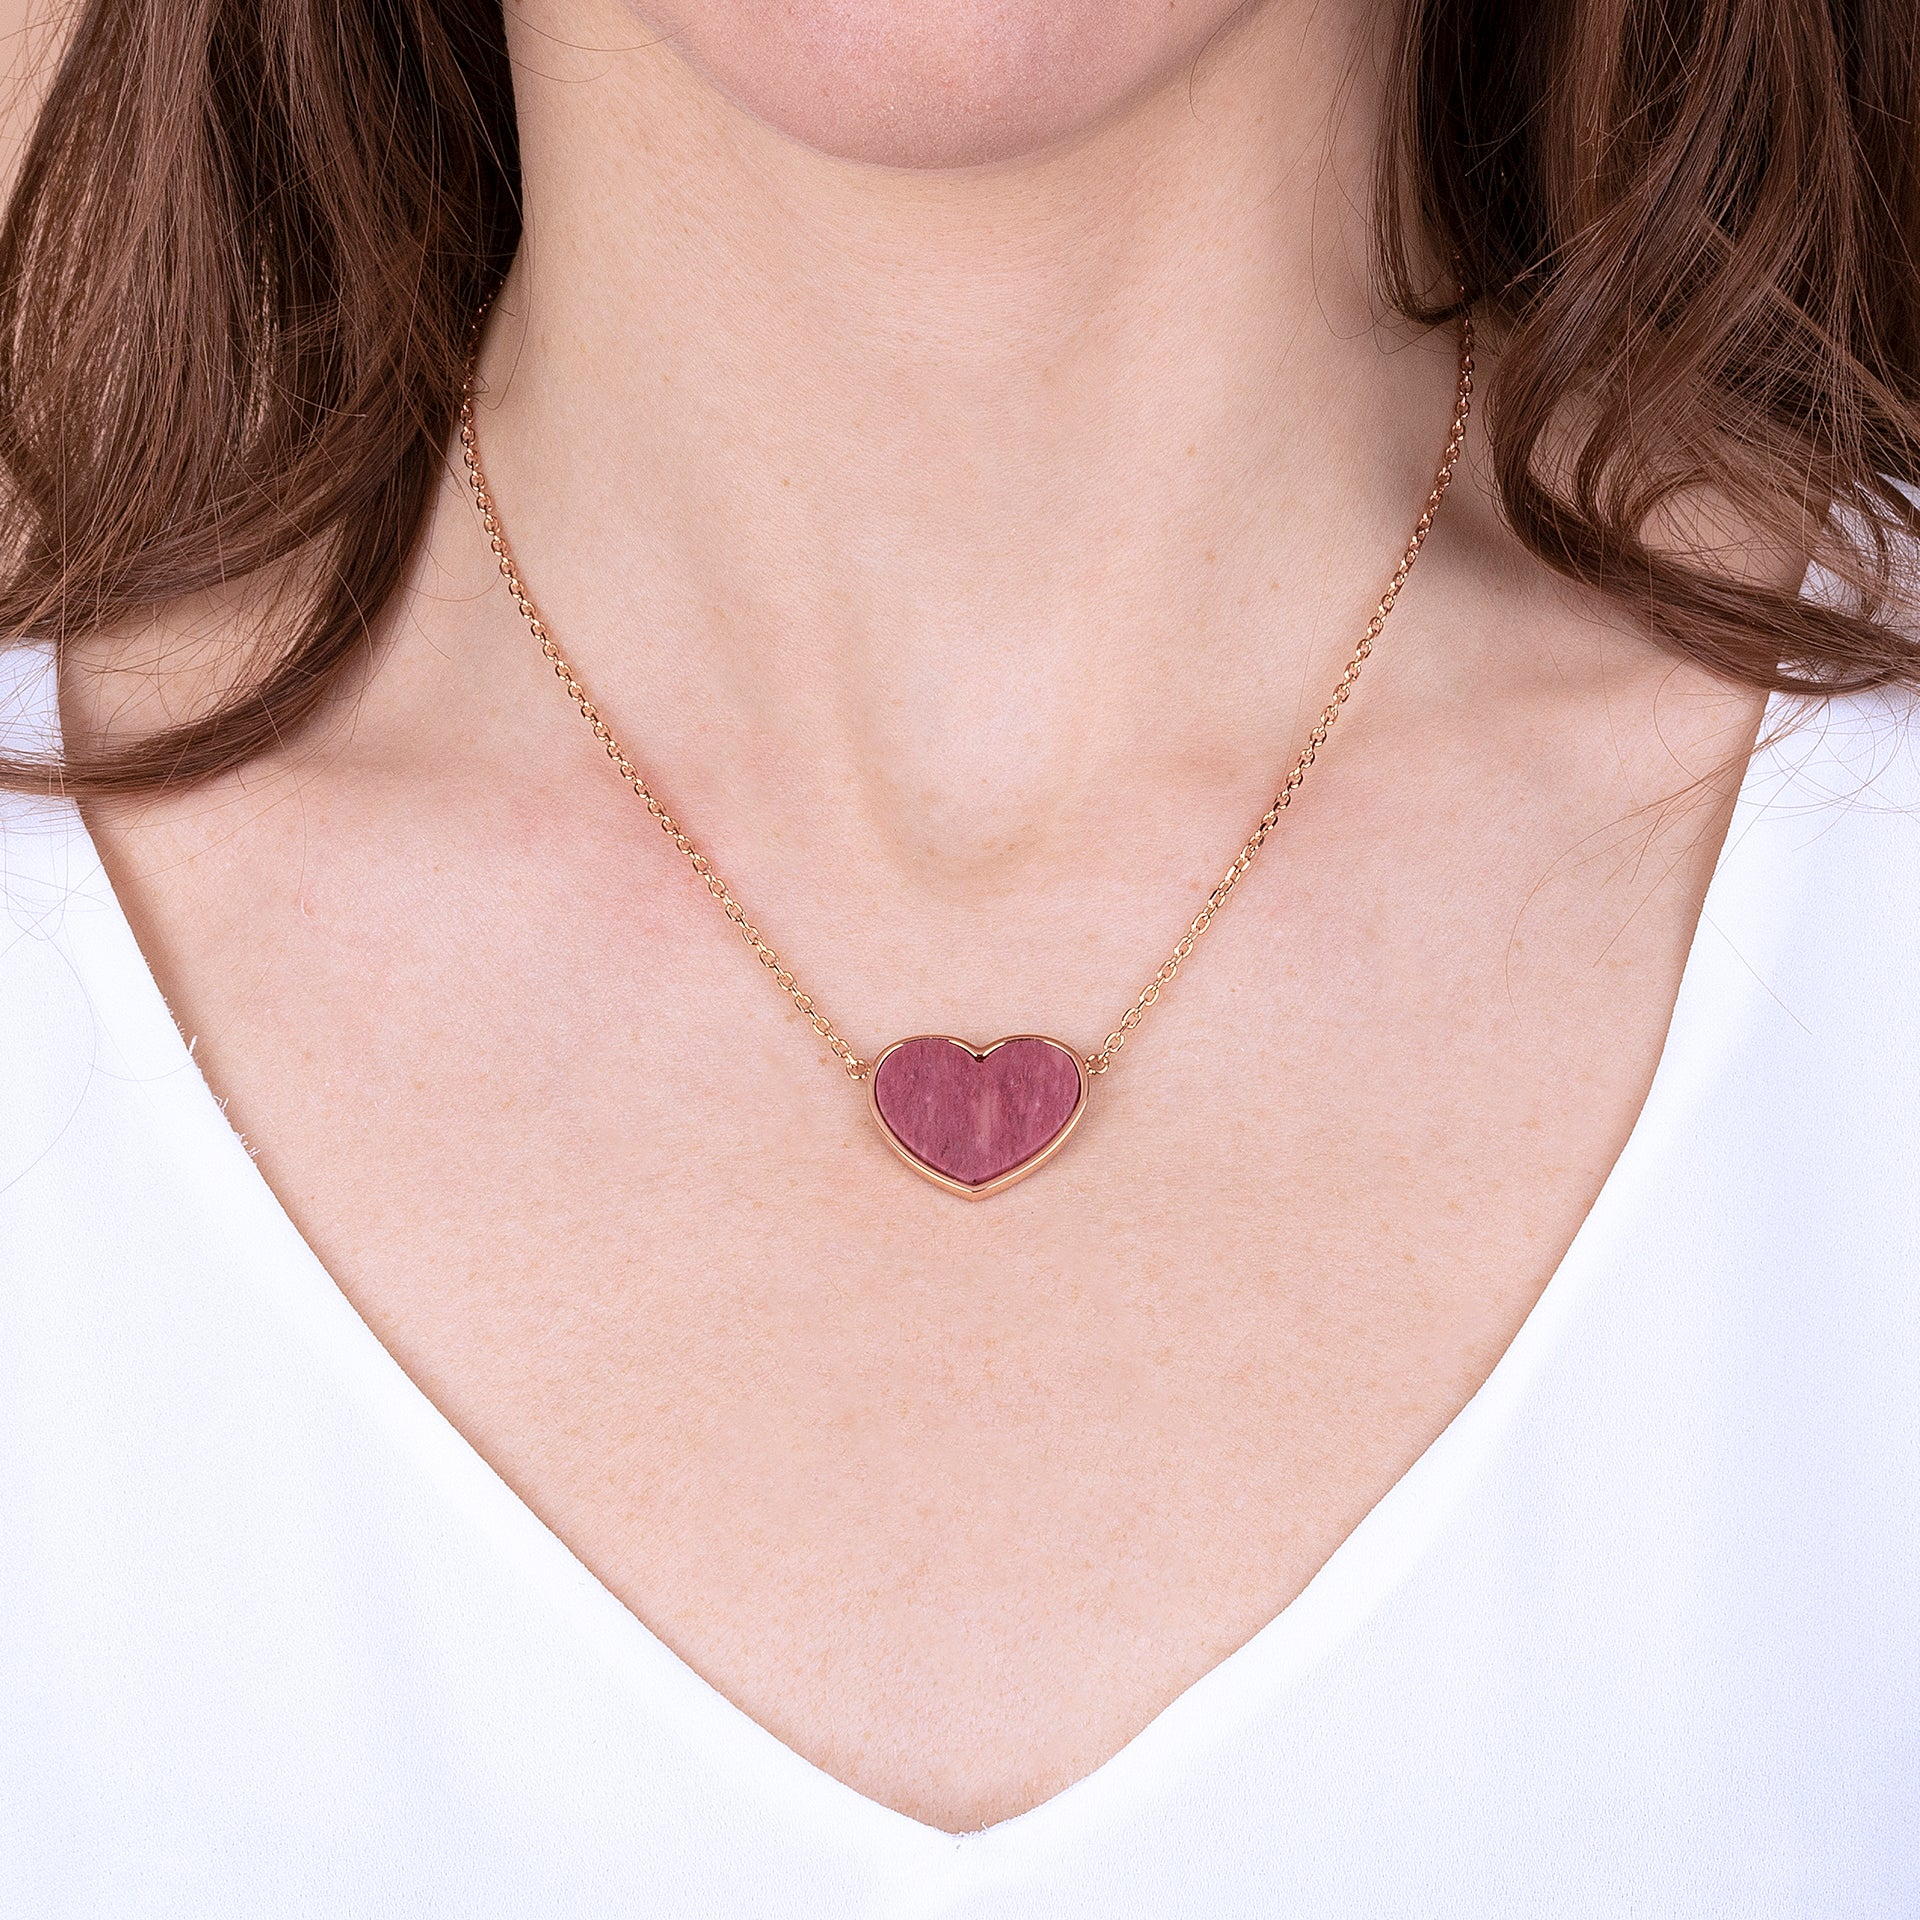 Flat Natural Stone Heart Pendant Necklace